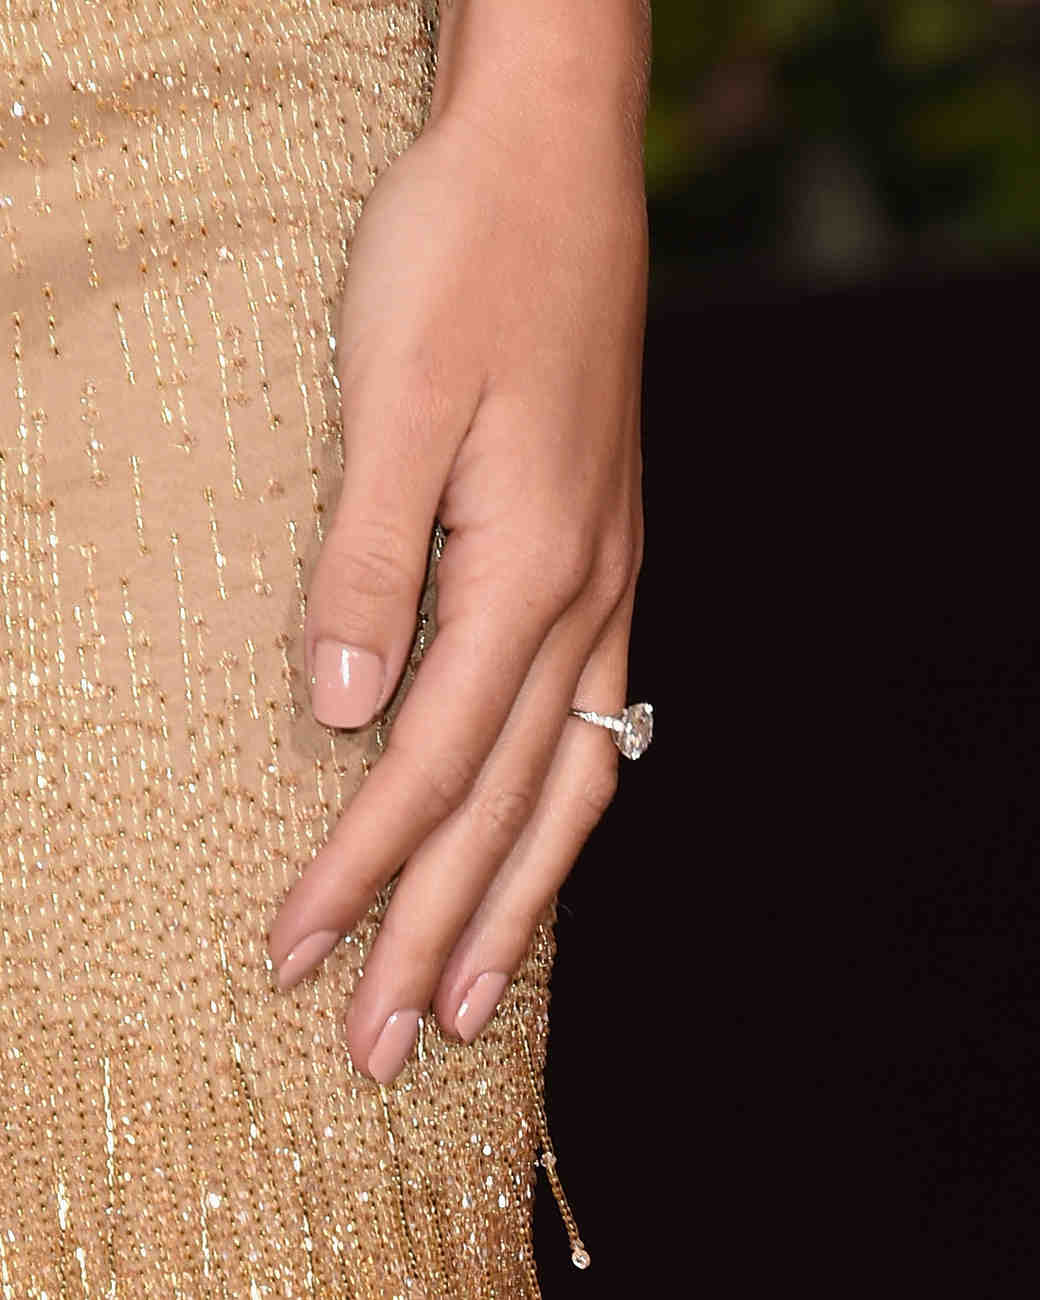 celebrity-engagement-ring-rosie-huntington-whiteley-0116.jpg